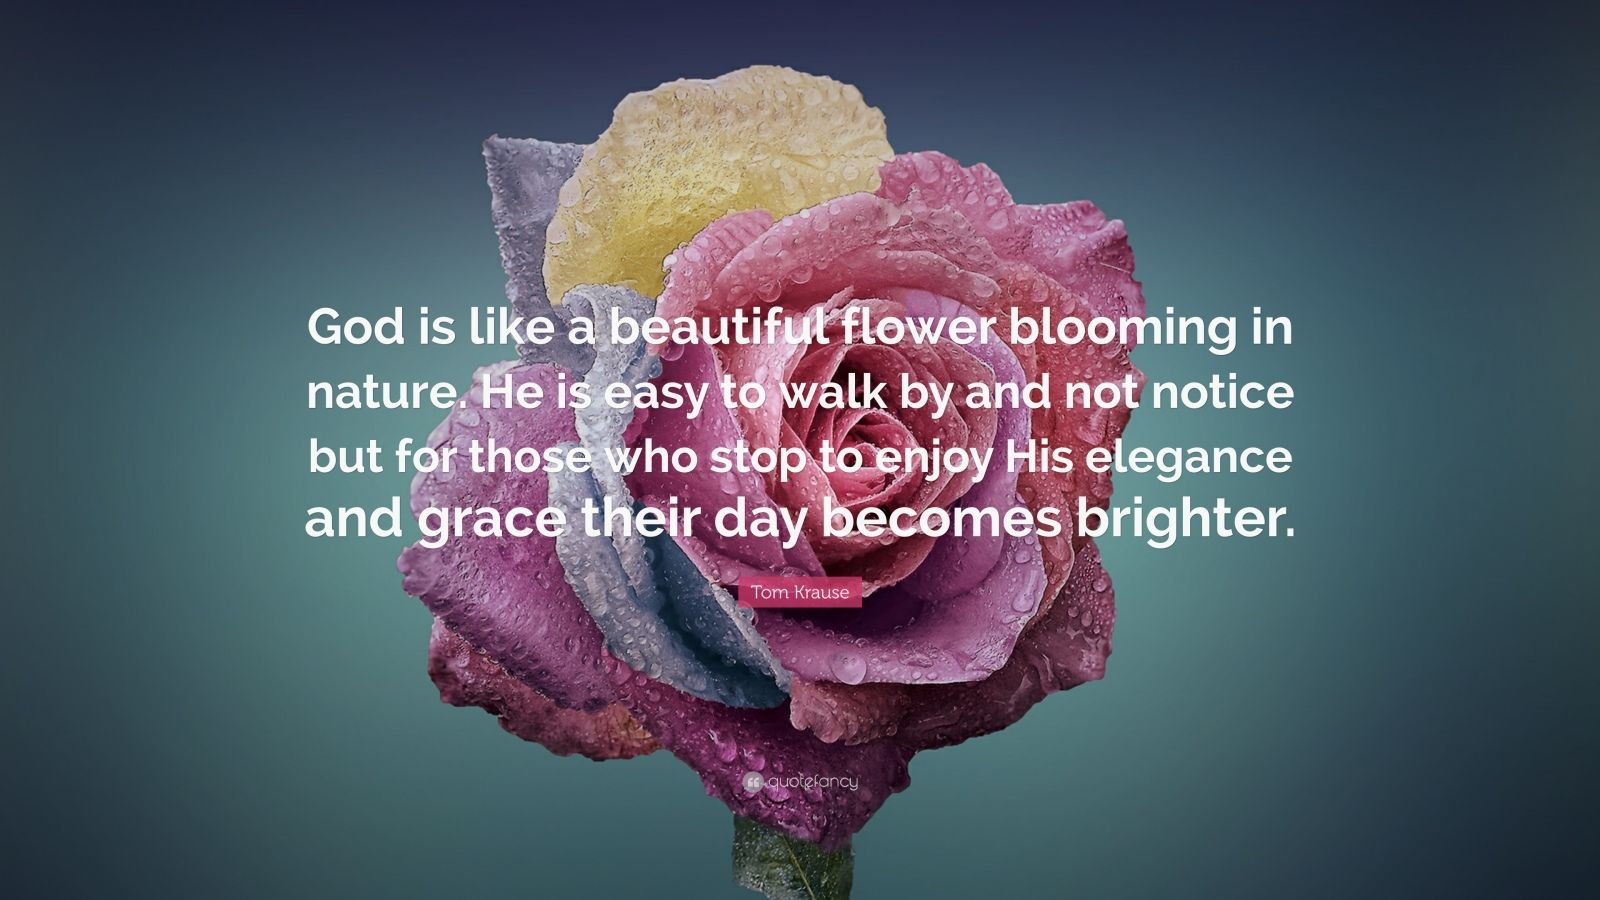 """Tom Krause Quote: """"God is like a beautiful flower blooming in nature. He is easy to walk by and not notice but for those who stop to enjoy His elegance and grace their day becomes brighter."""""""